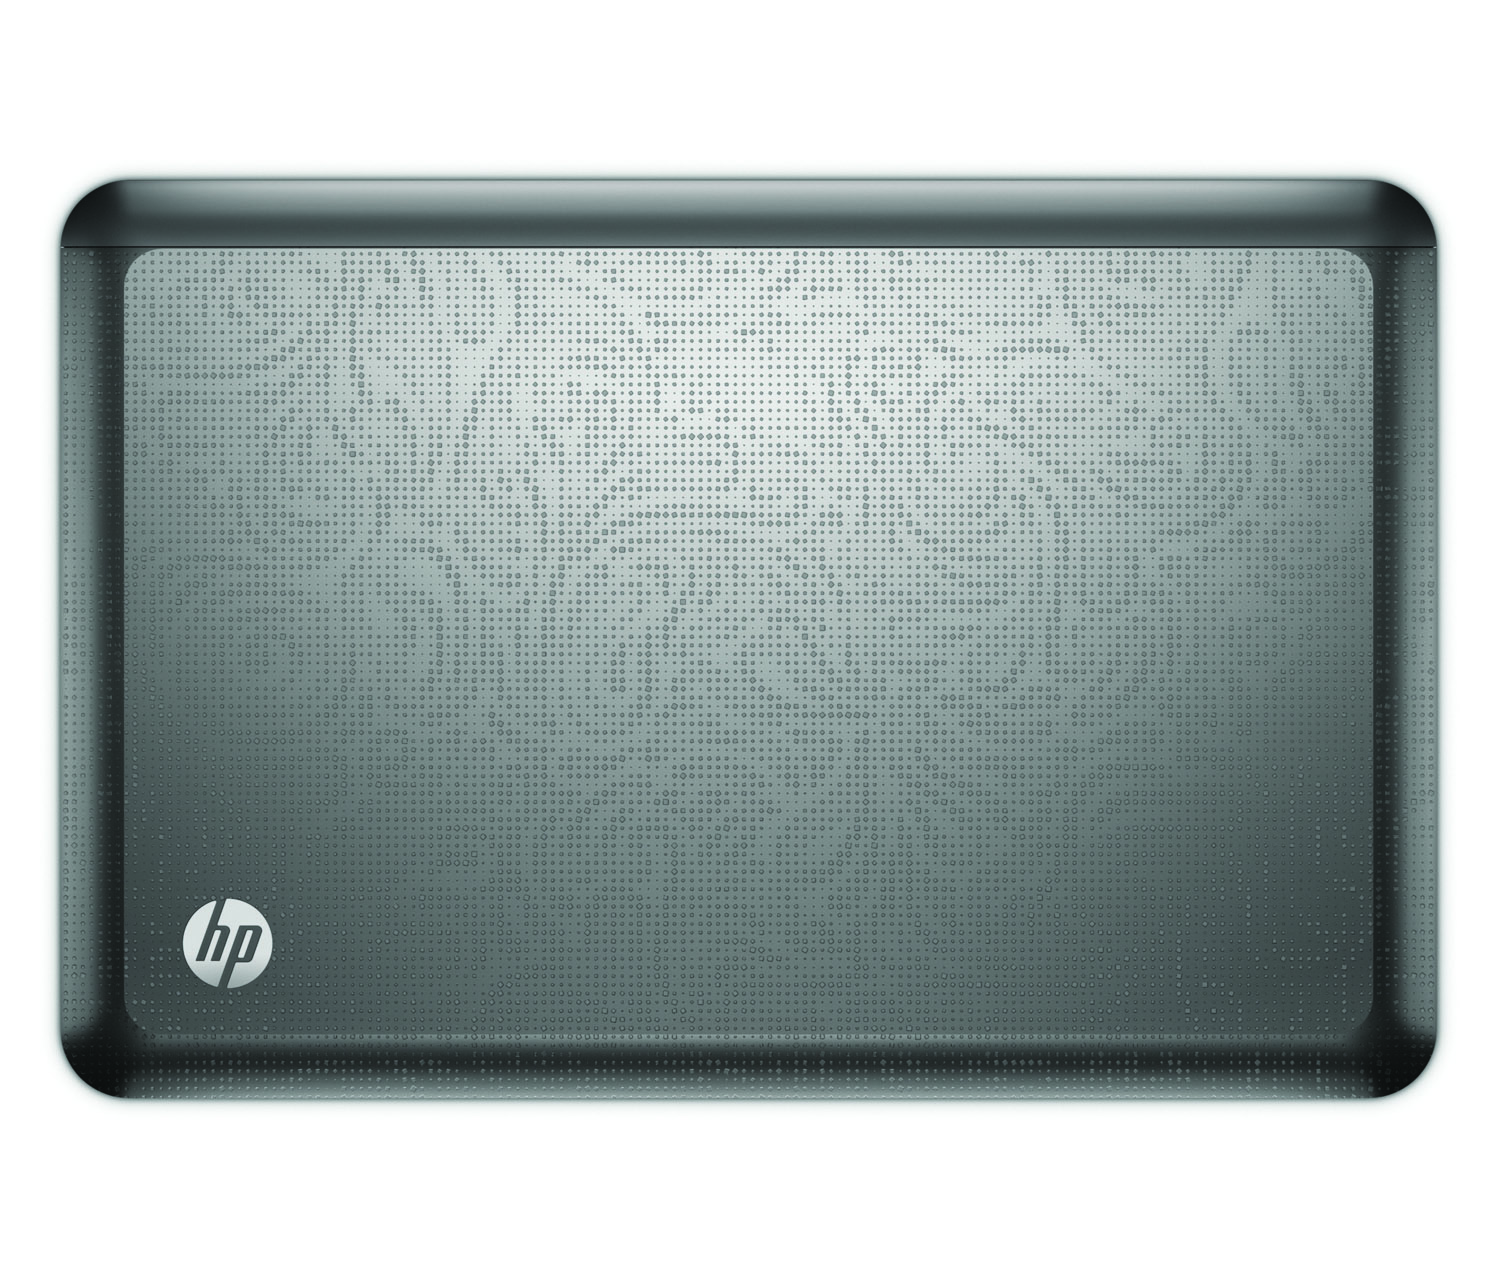 HP Envy 14, top closed on white